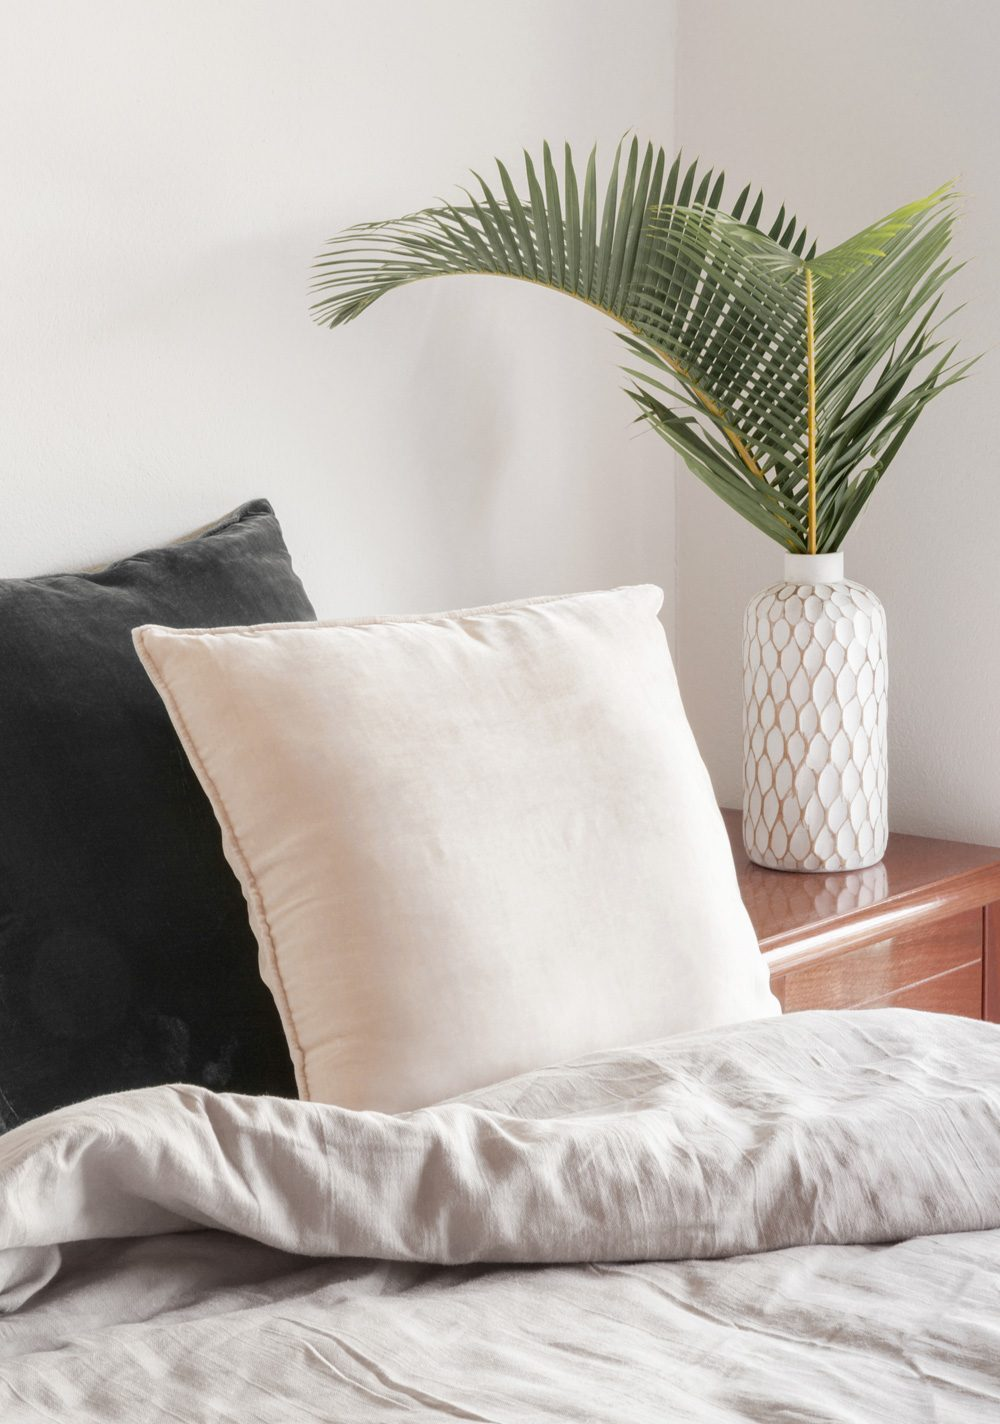 Cozy bed with palm leaf plant on side table in a white vase